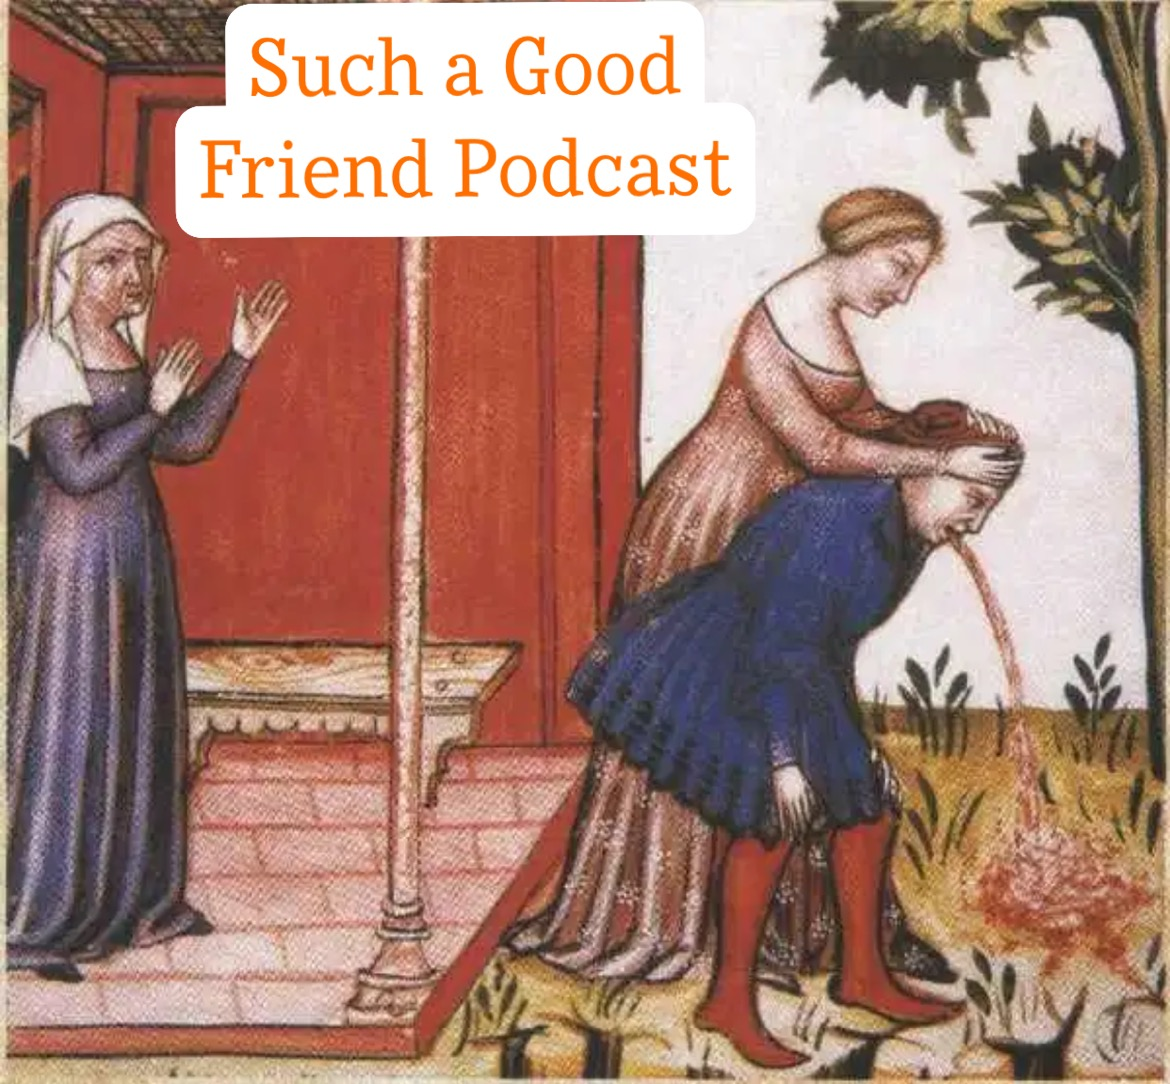 Such a Good Friend Podcast